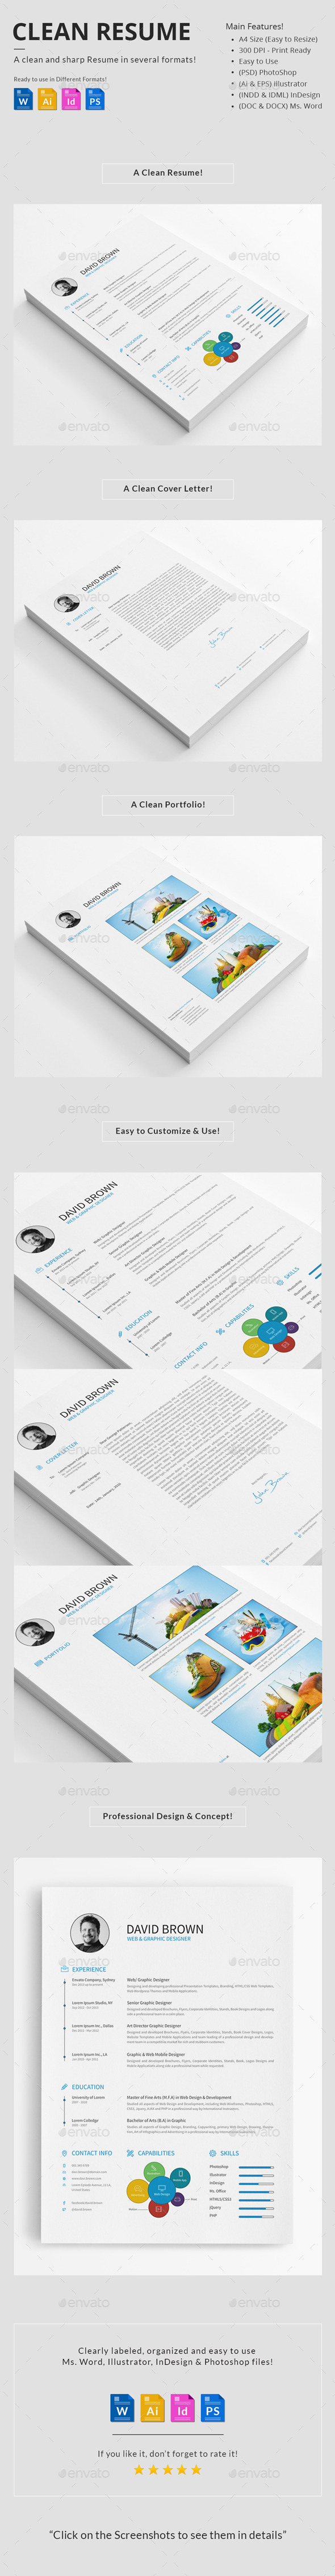 GraphicRiver Clean Resume 10267531